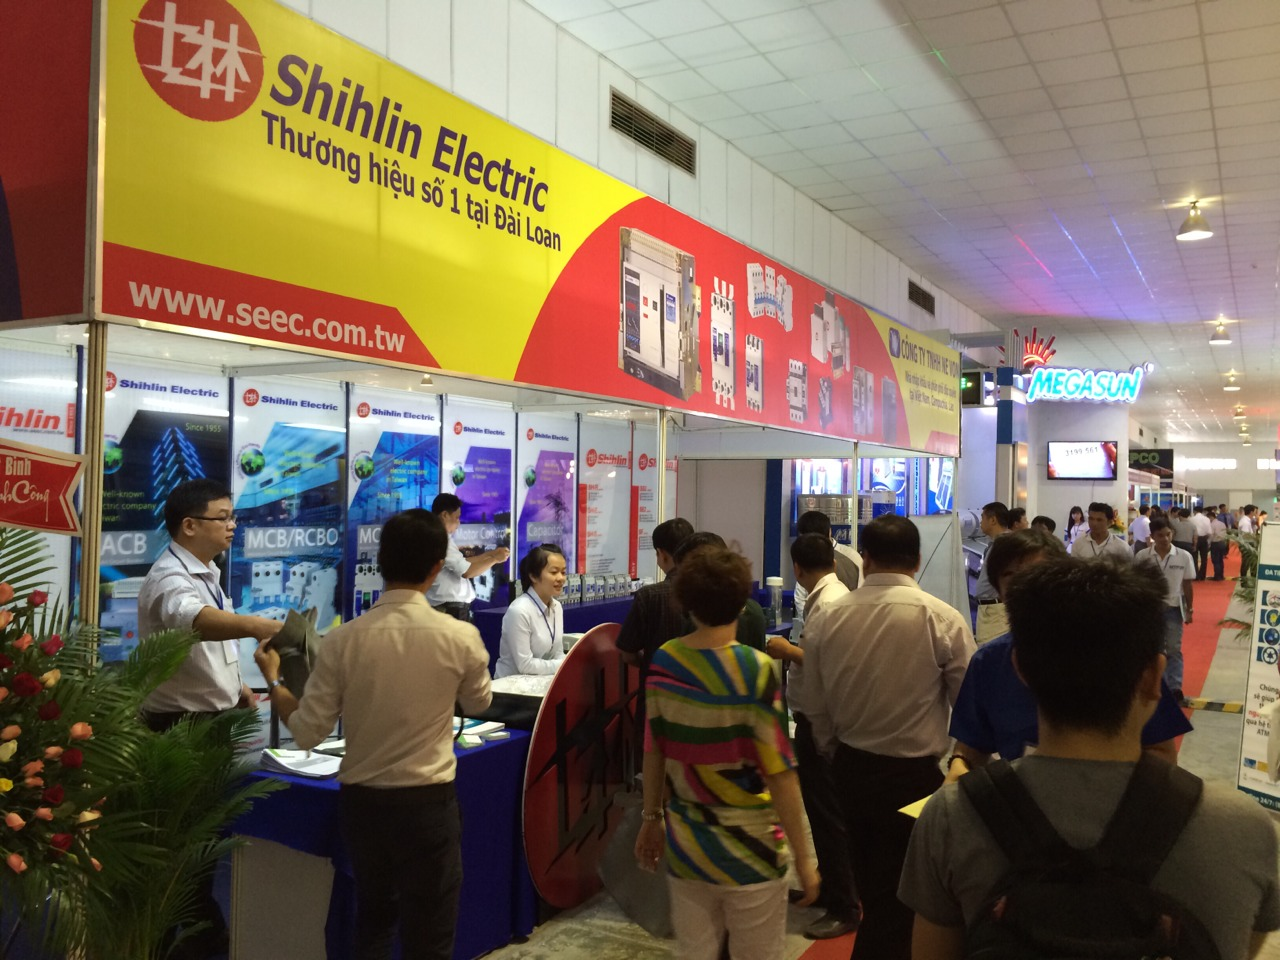 Stand Shihlin Electric di The 7th International Exhibition on Electrical Technology & Equipment- Vietnam ETE 2014